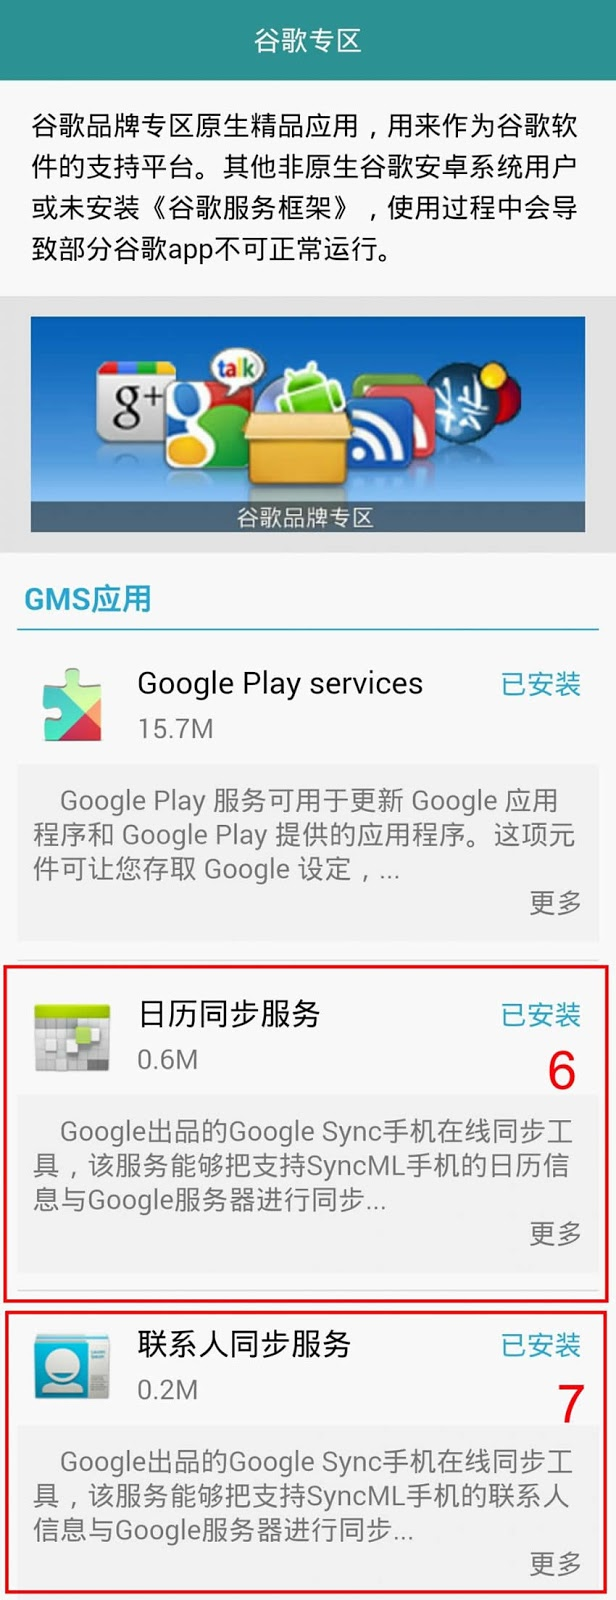 How To Install Google Play Services On Huawei Phone How to